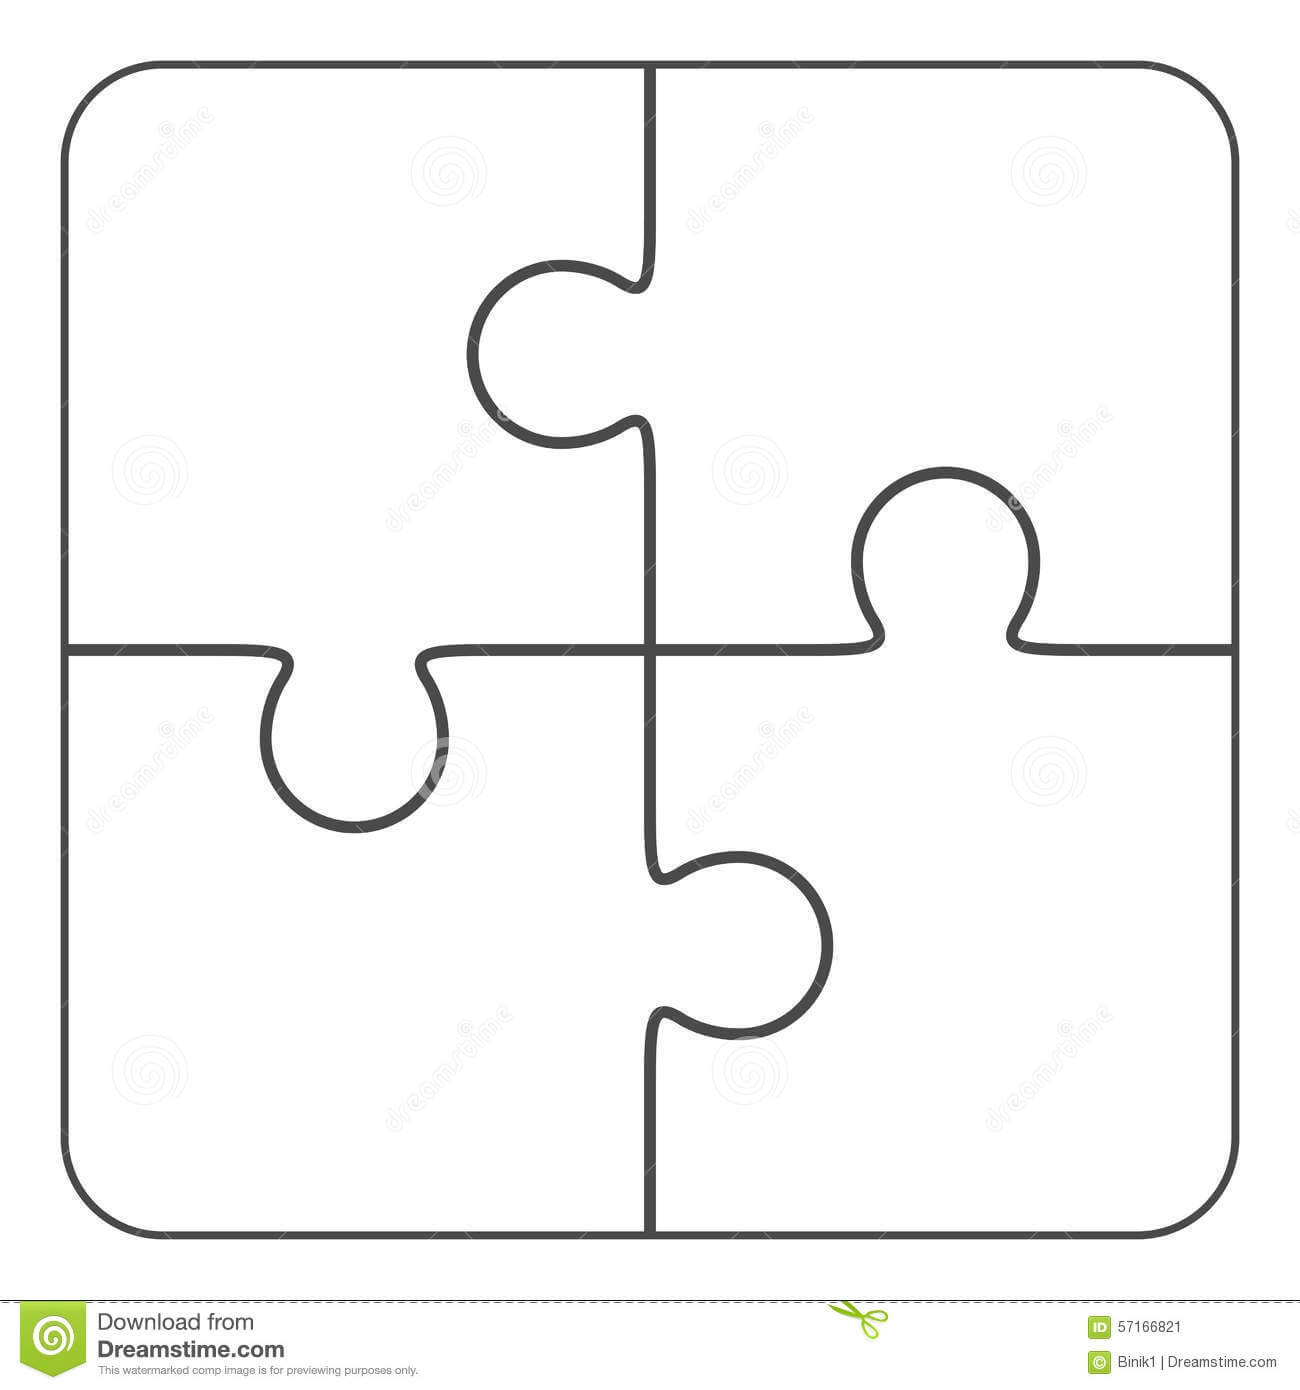 Jigsaw Puzzle Blank 2X2, Four Pieces Stock Illustration With Blank Jigsaw Piece Template